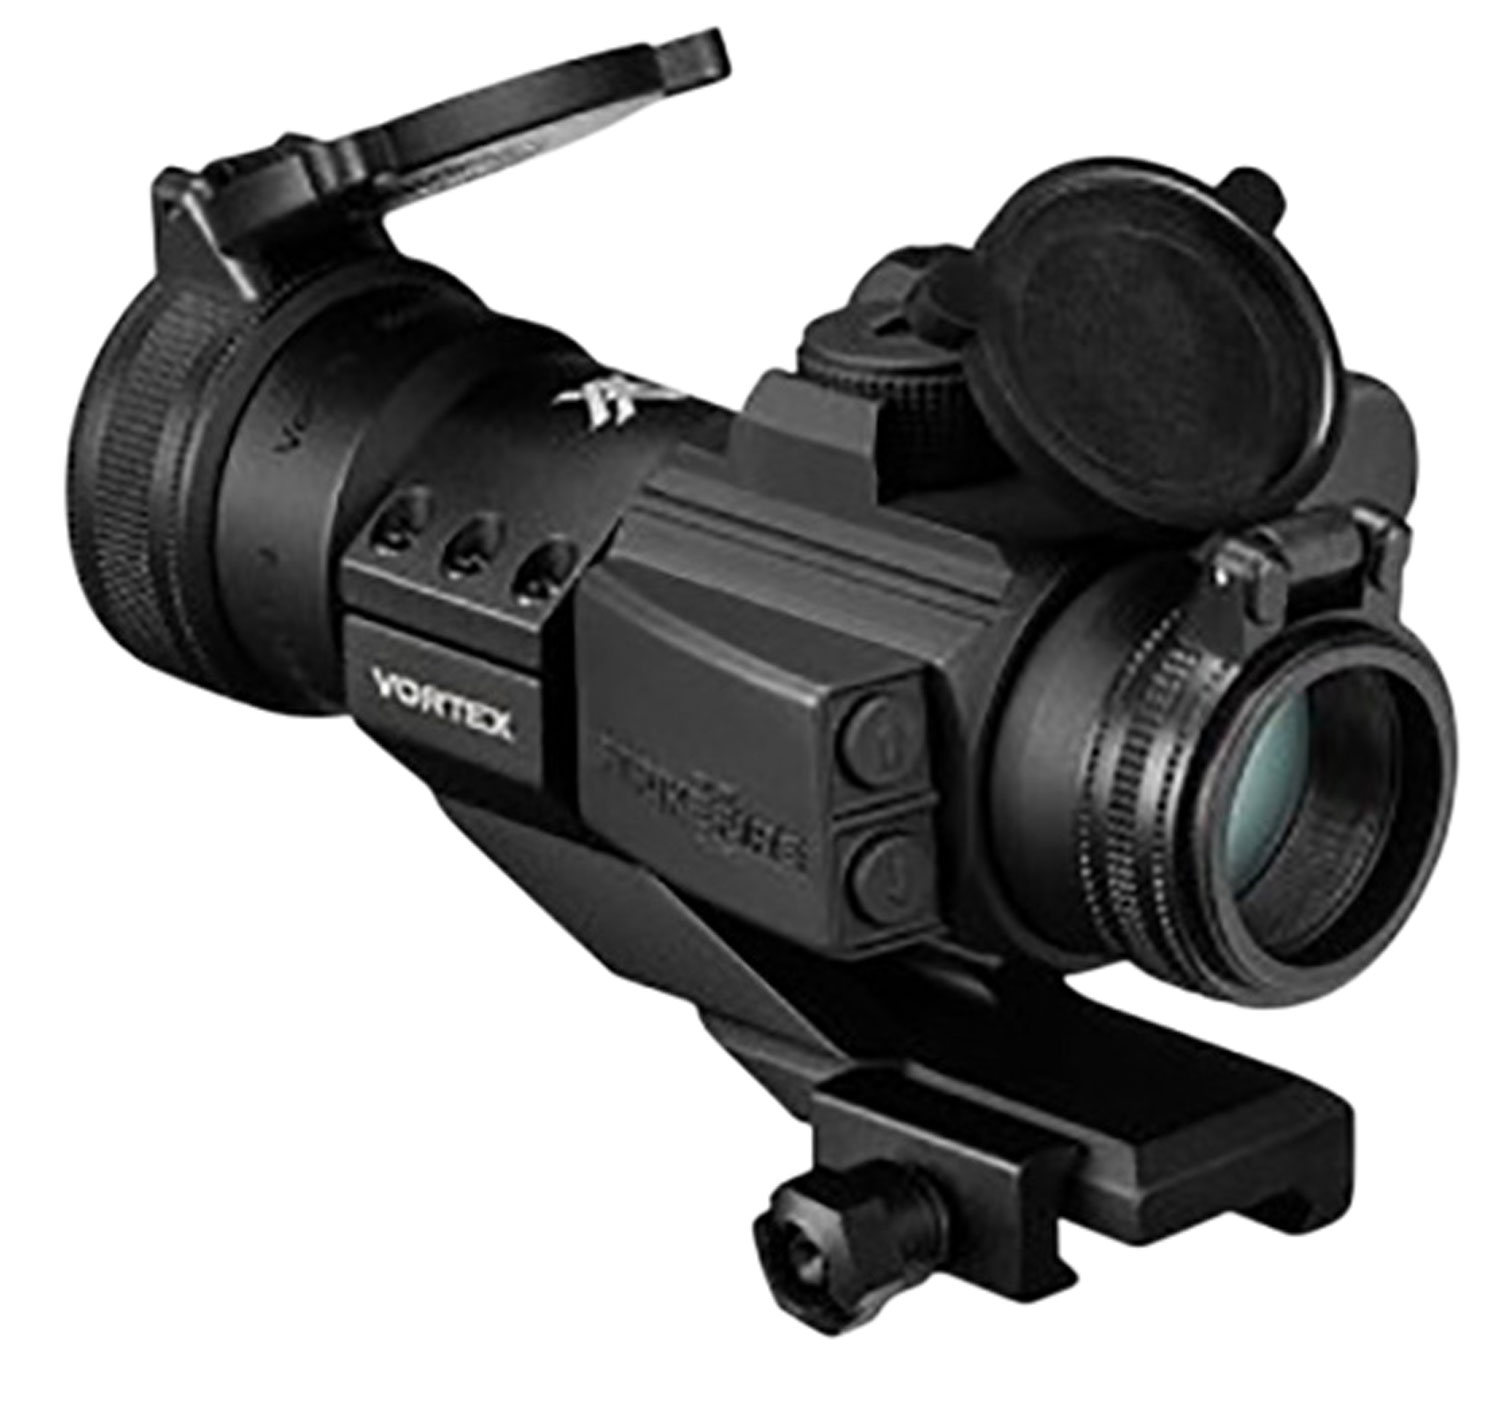 CFA VORTEX STRIKEFIRE COMBAT SIGHT